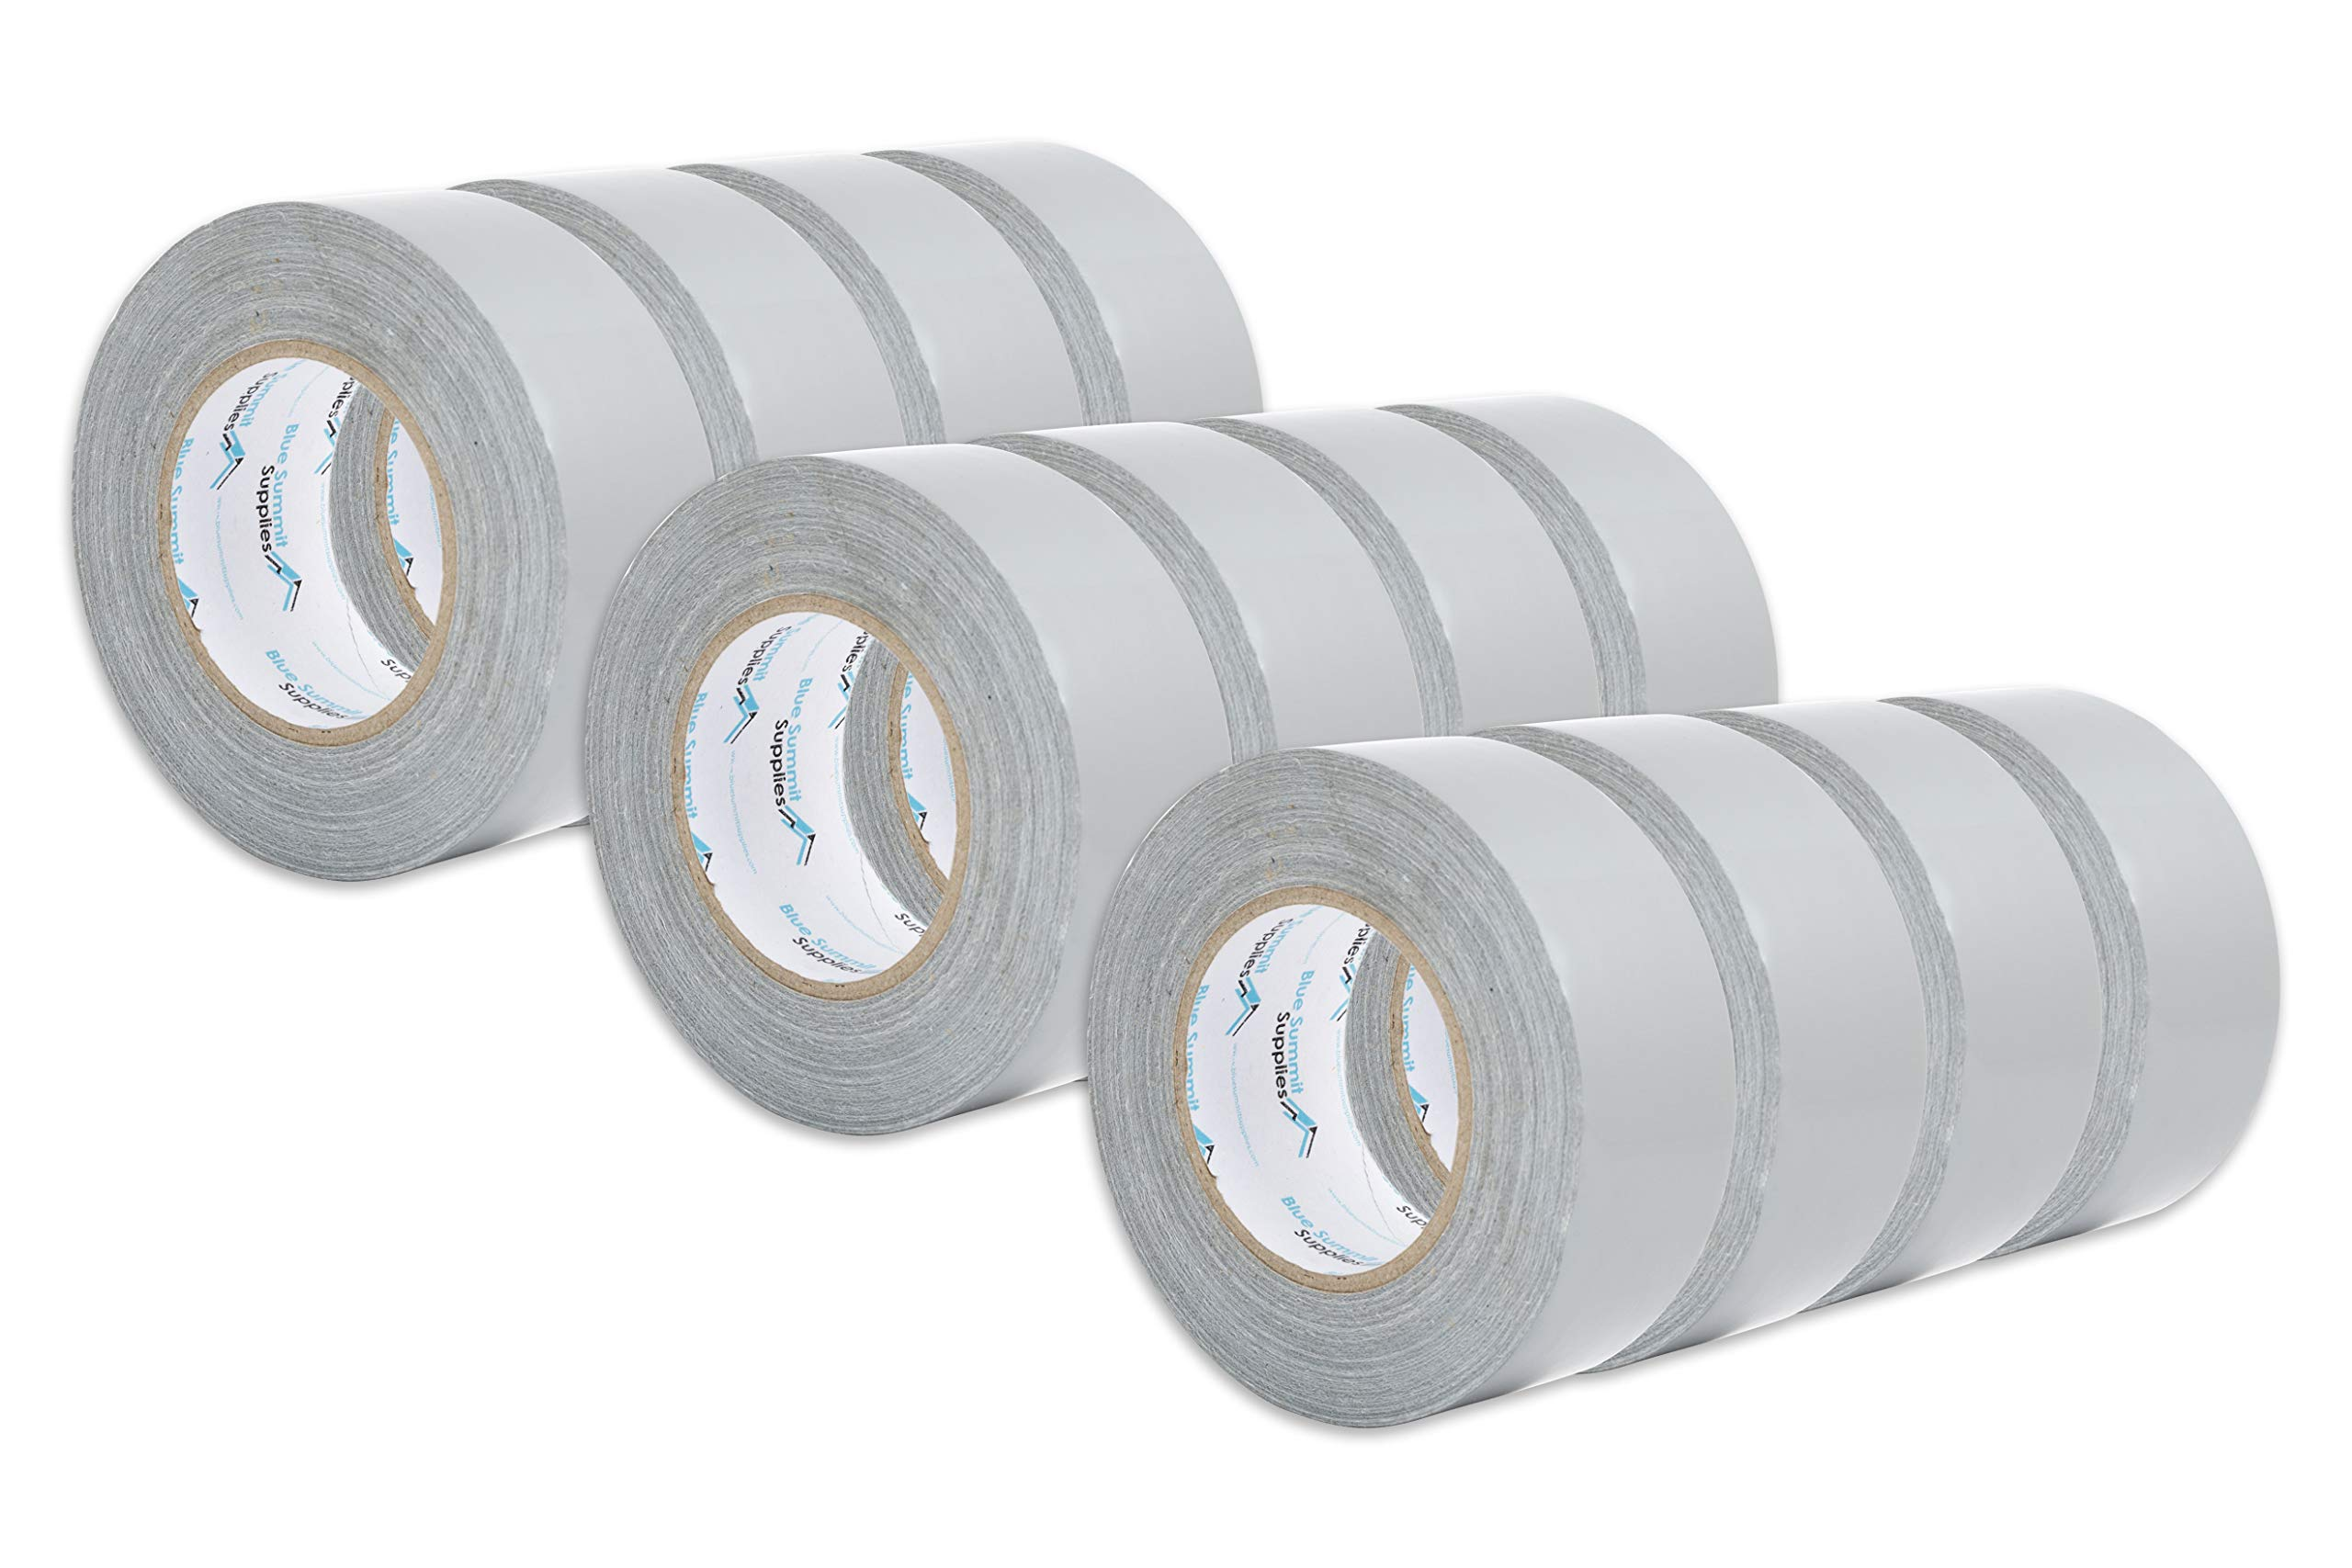 12 Pack Duct Tape, Tear by Hand Design, Silver, Strong 7.3mil Thickness, Designed for Home and Office use with Commercial Grade Strength, 60 Yard Length, 720 Total Yards